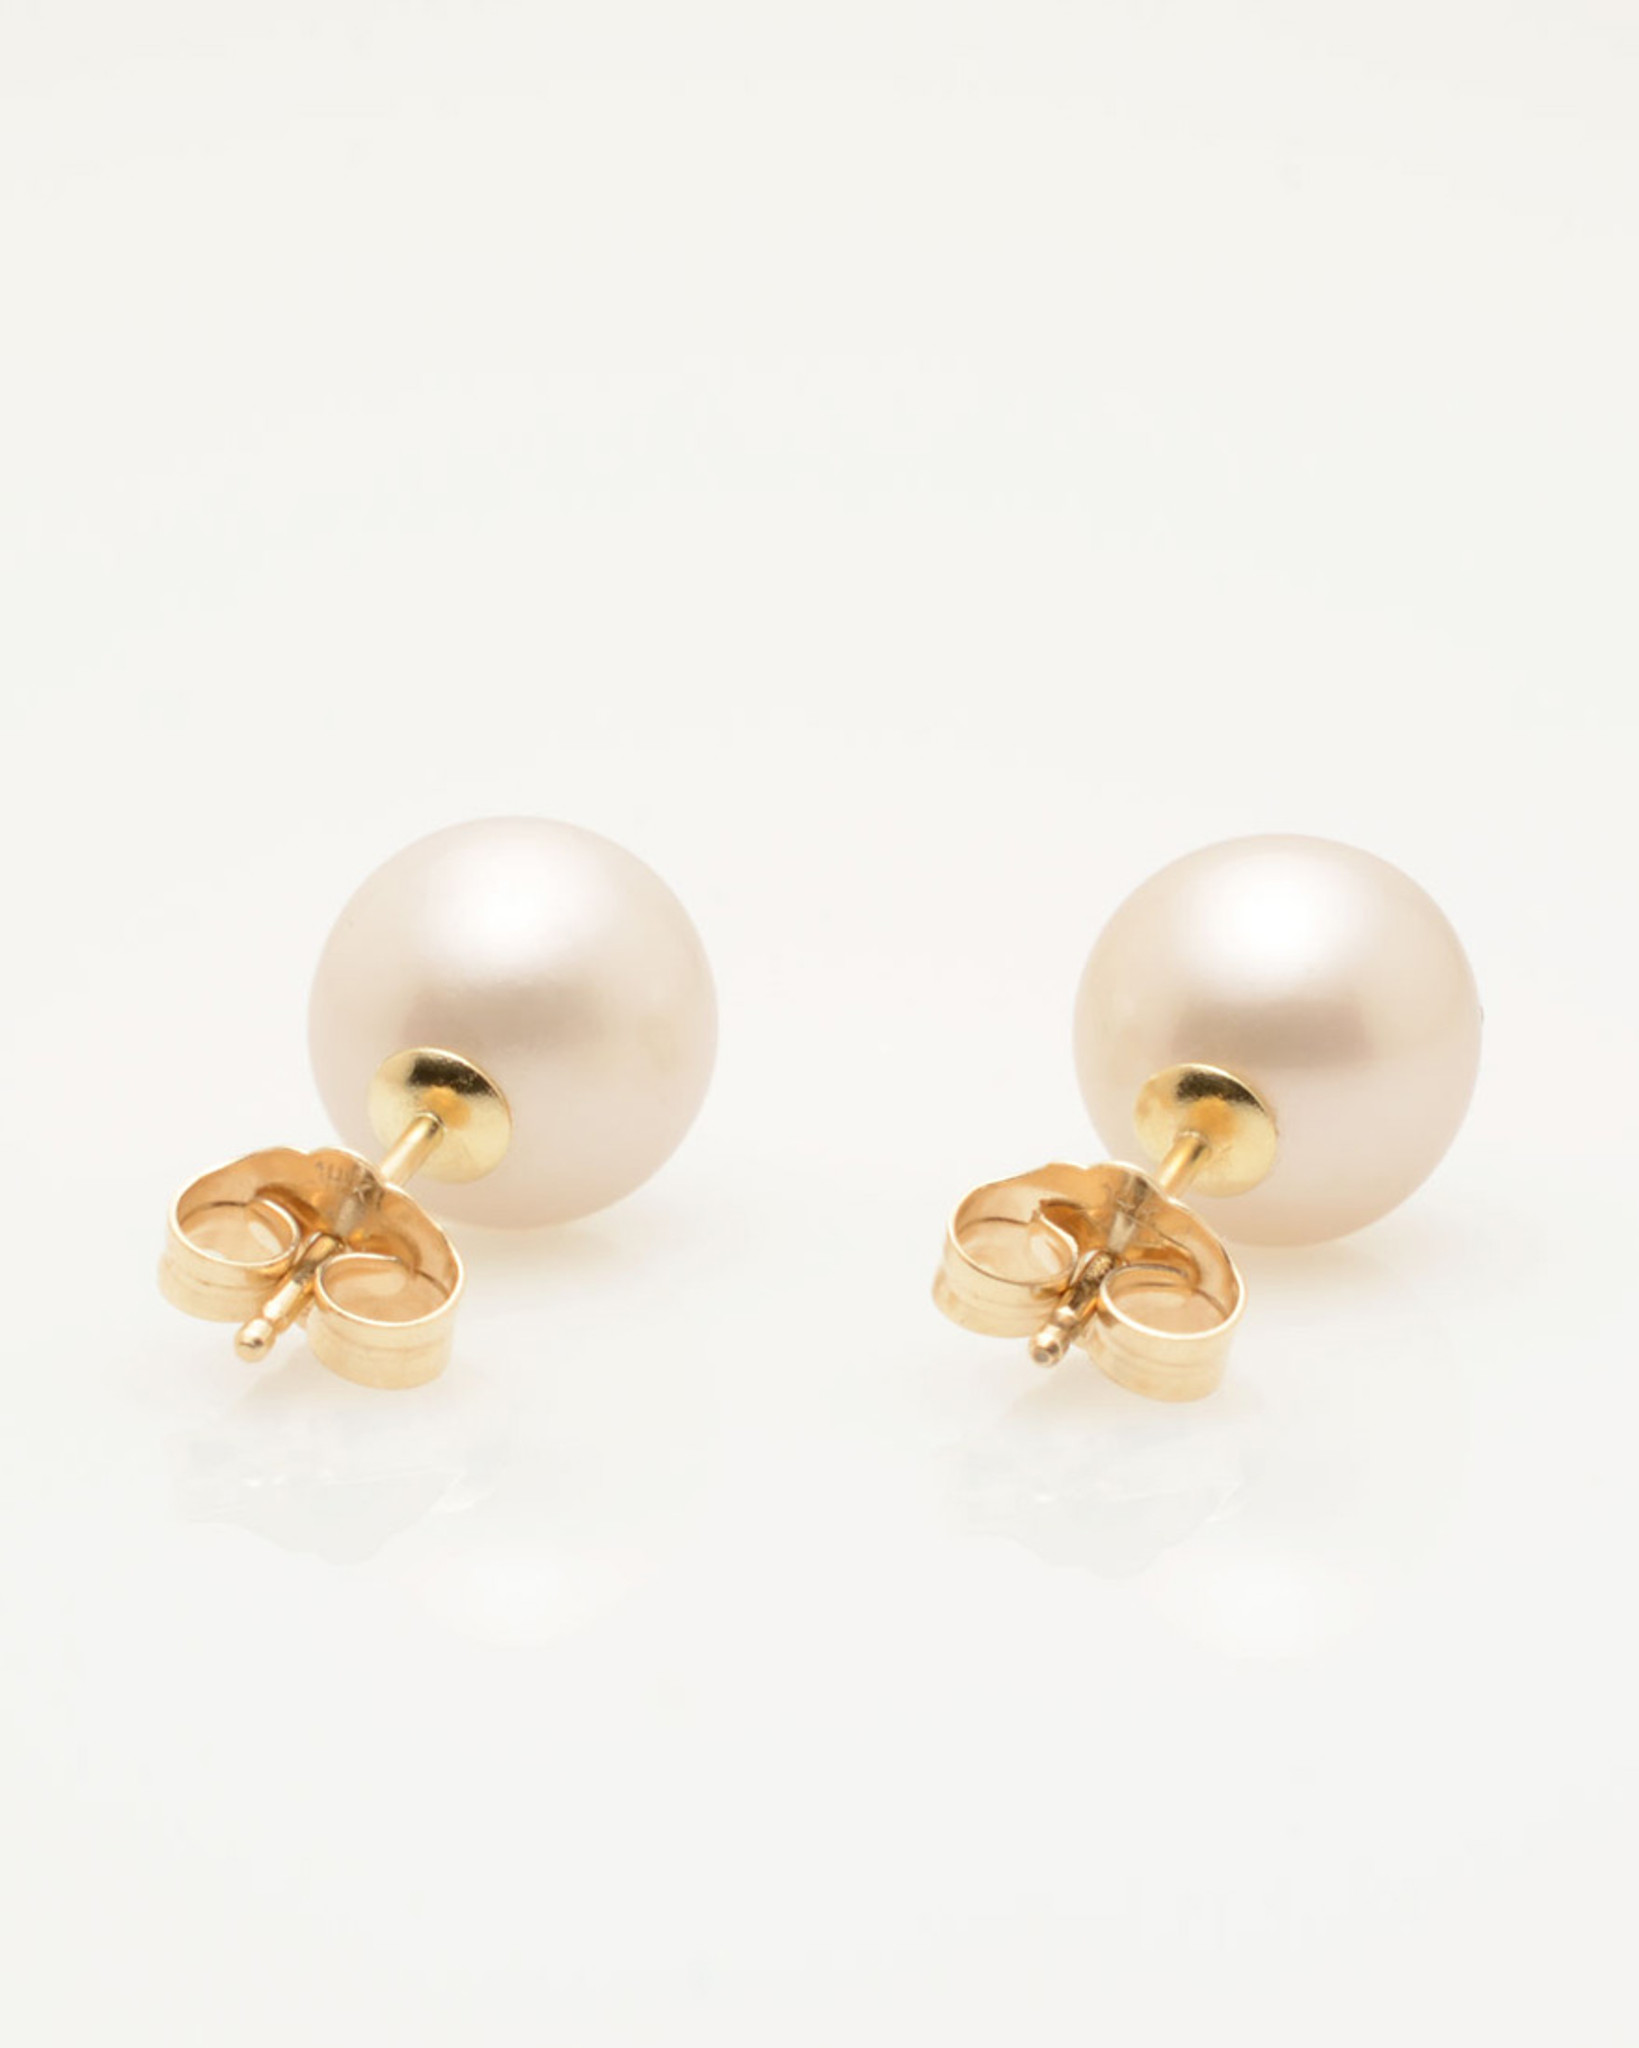 Back view of Cultured Freshwater Pearl Earrings with Smiley Emoji Diamond Pavè & 14k Gold Posts (8-9 mm) by Jewelry Designer Nektar De Stagni